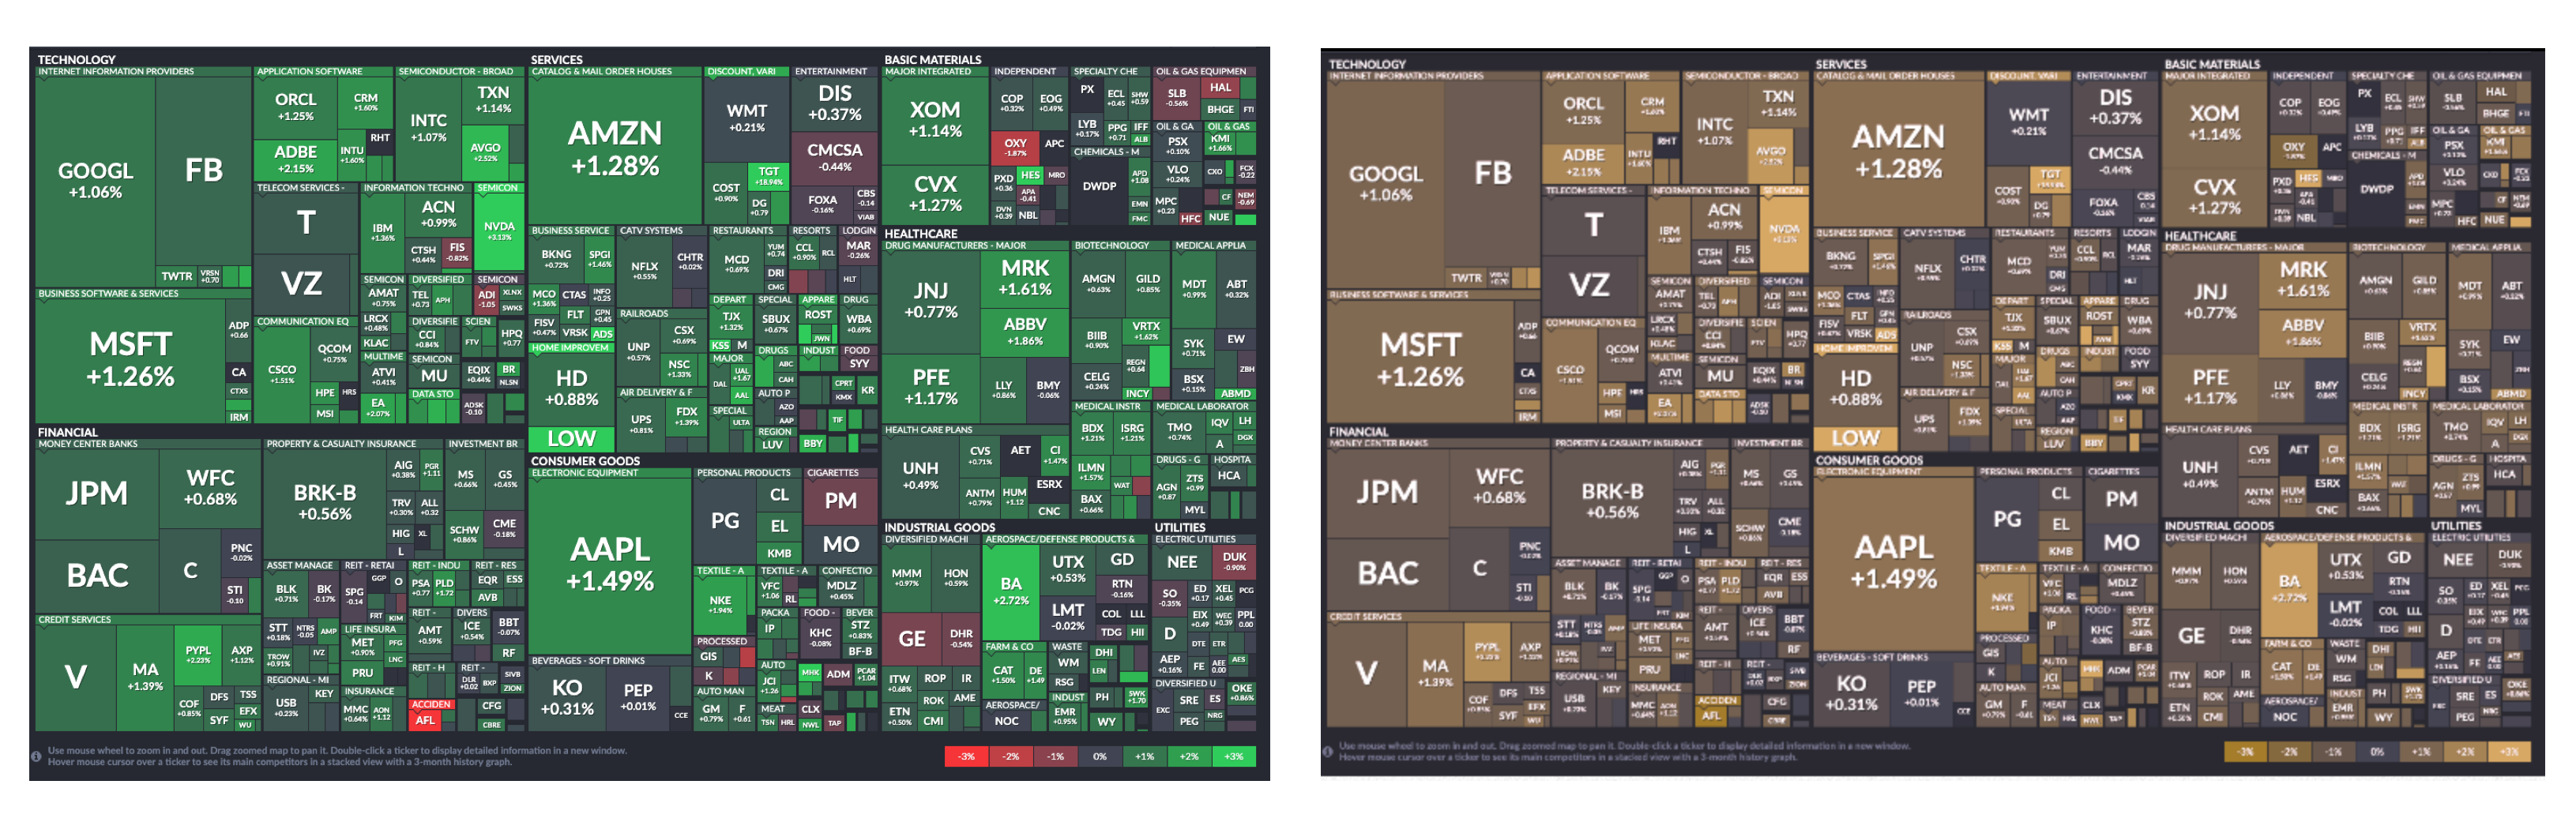 A version of the S&P 500 treemap as shown in a color blindness simulator